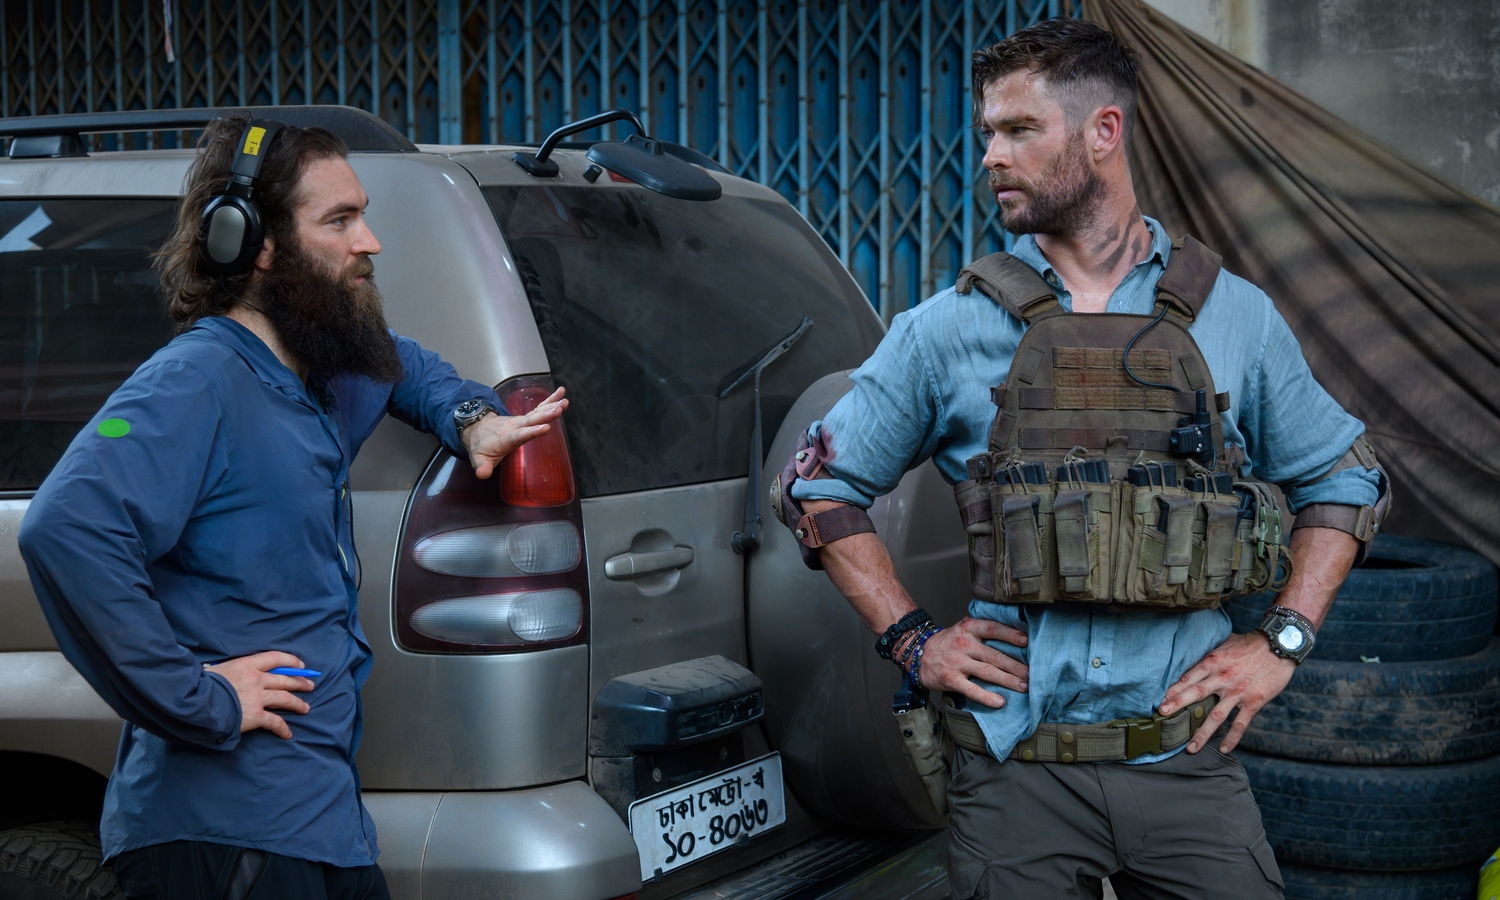 Extraction Bringing The Netflix Chris Hemsworth Movie To Life Den Of Geek